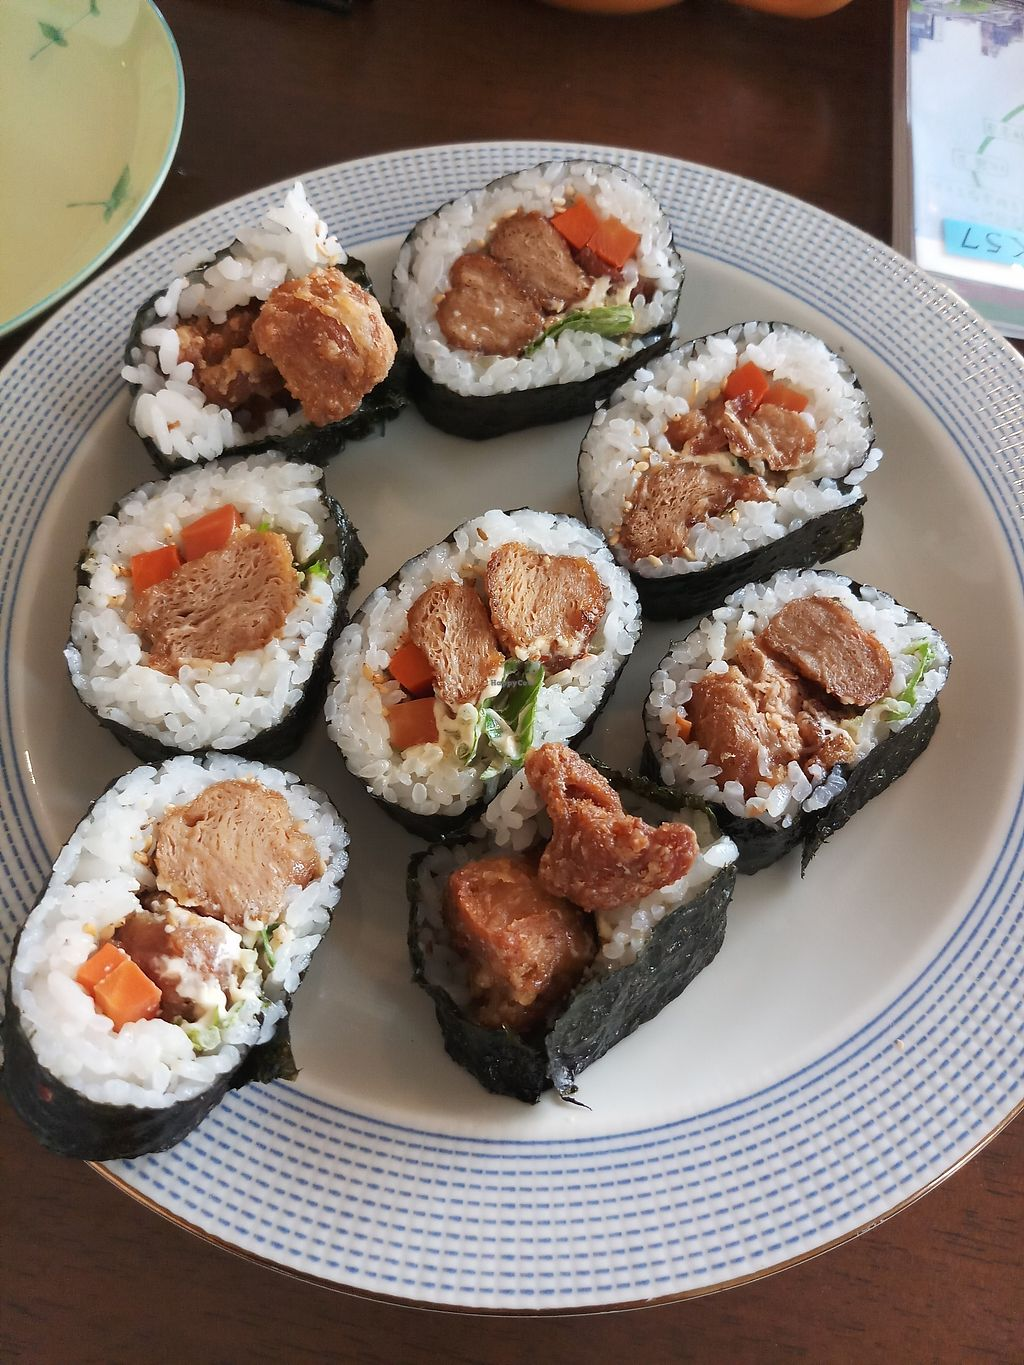 """Photo of CLOSED: Prunus  by <a href=""""/members/profile/MissEunice"""">MissEunice</a> <br/>Vegan sushi s with soy meat <br/> January 6, 2018  - <a href='/contact/abuse/image/32552/343652'>Report</a>"""